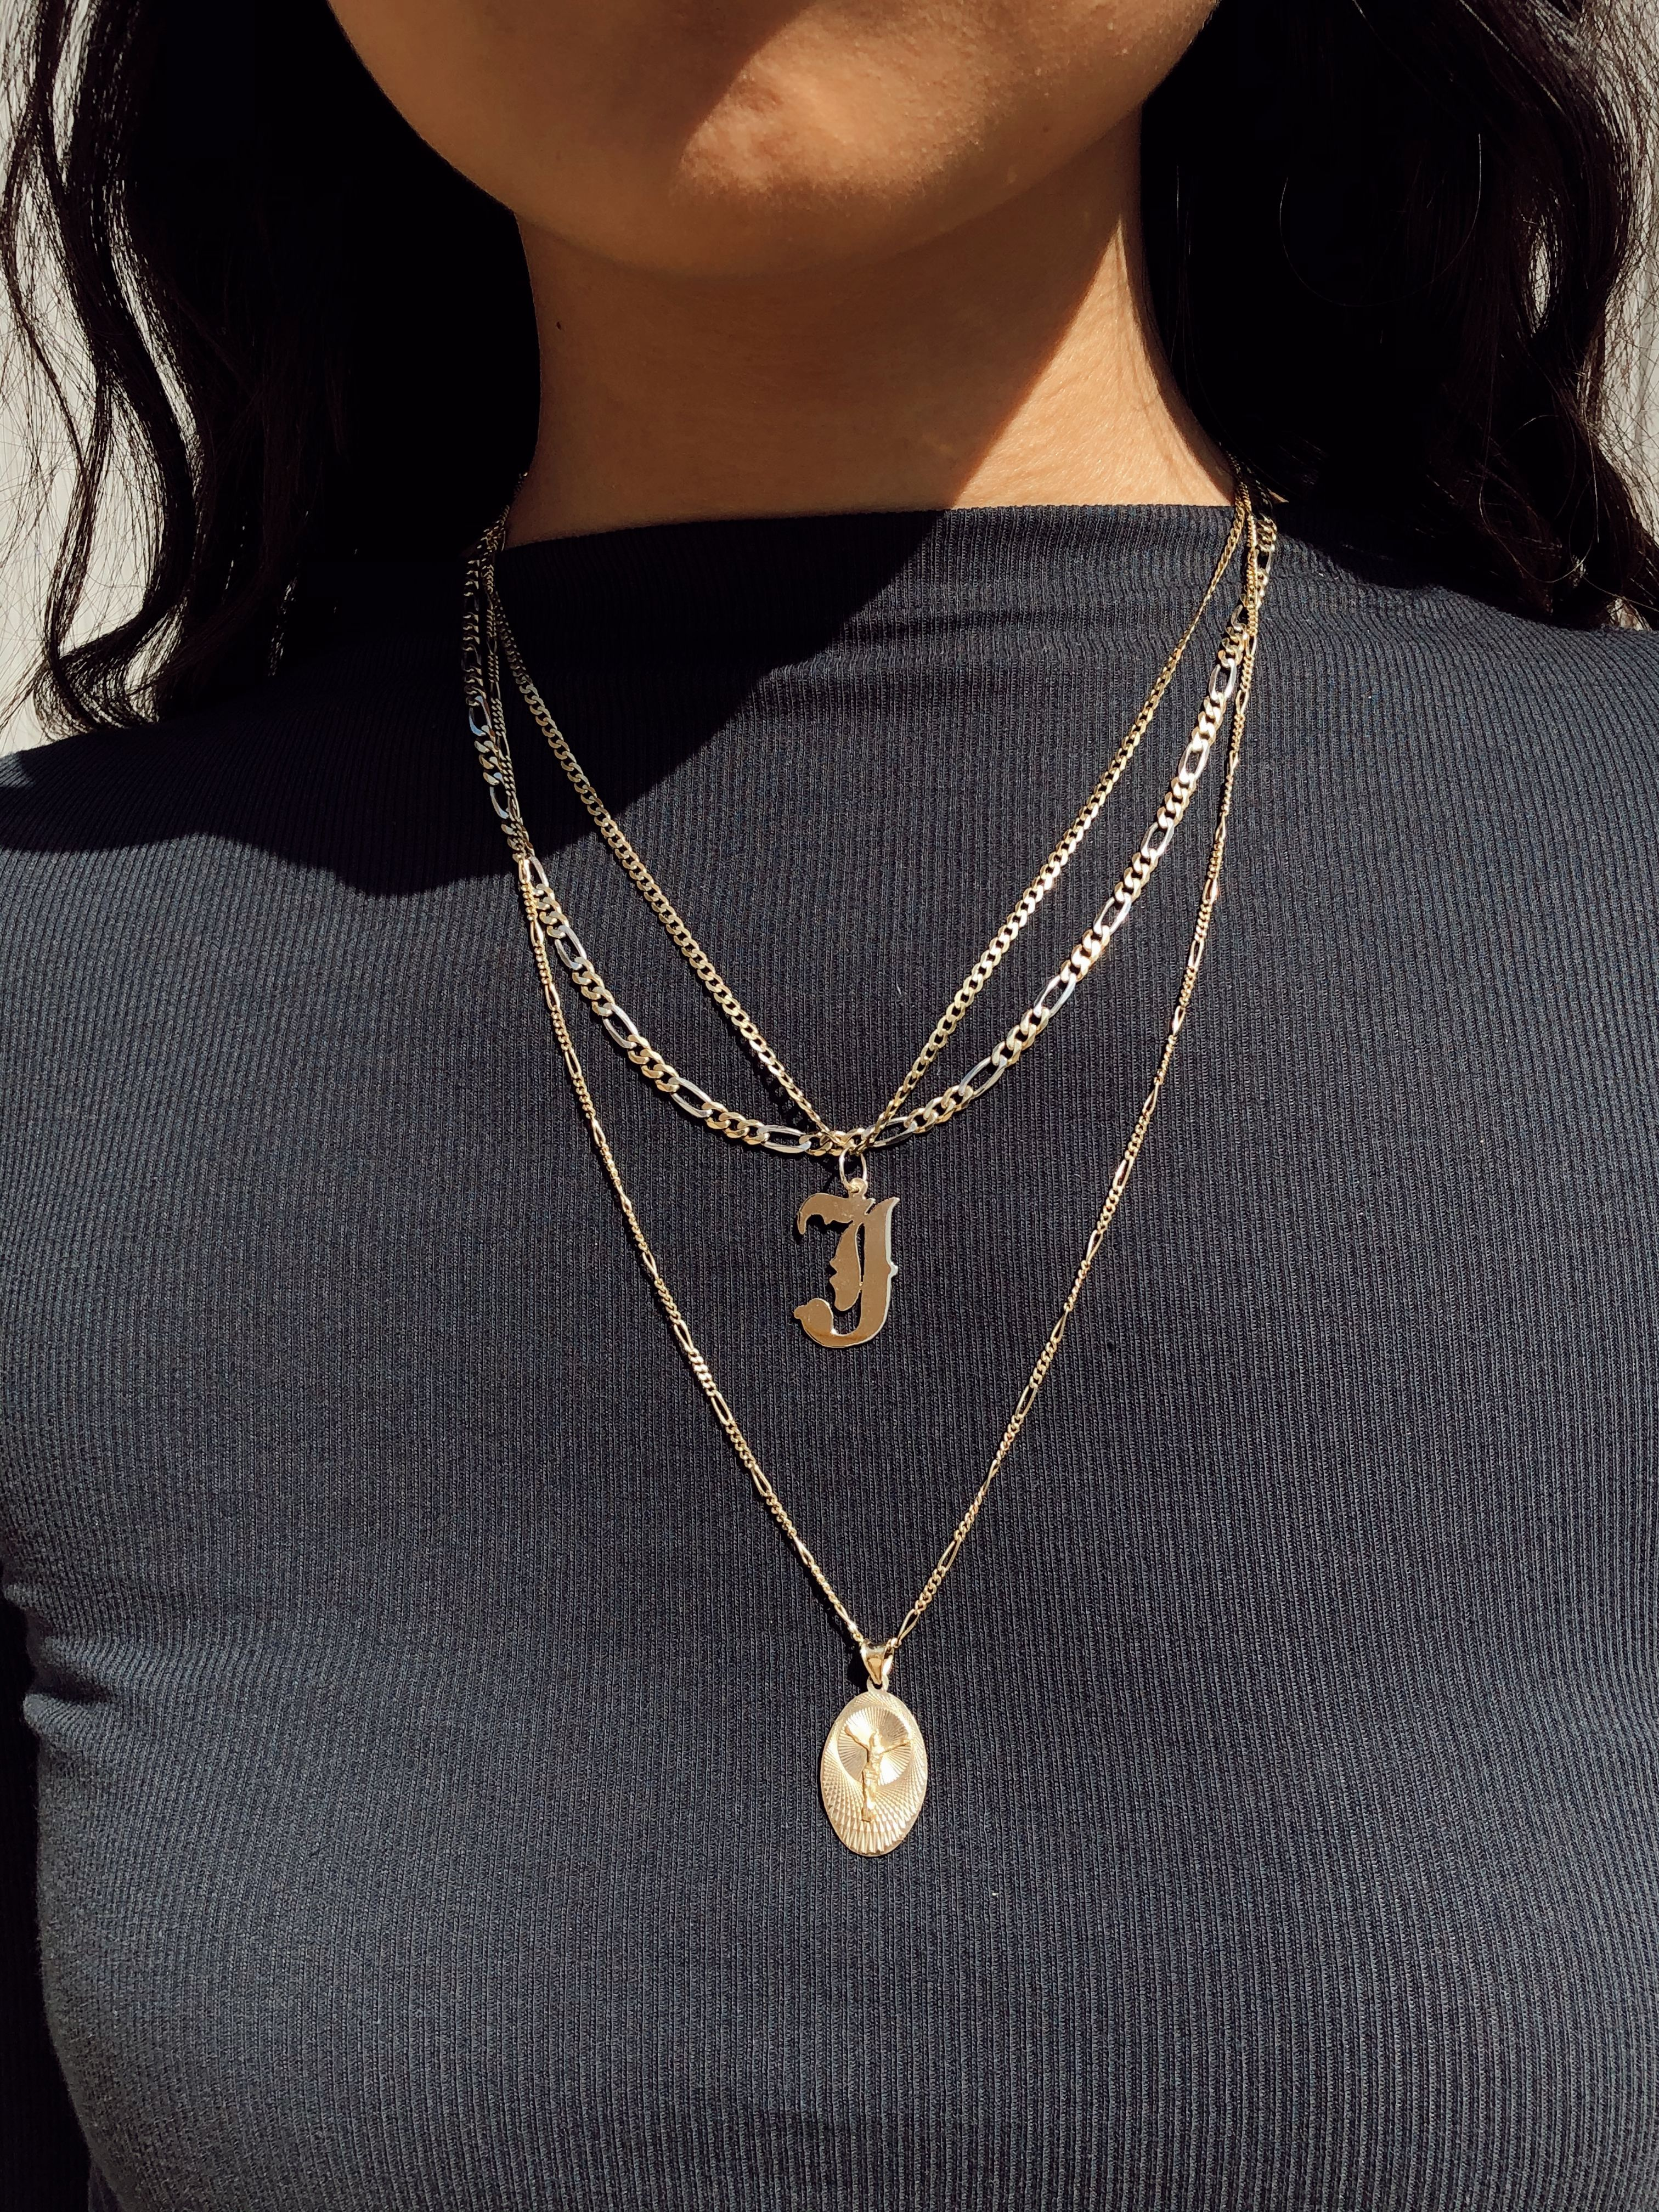 Old English Charm: Layered Gold Chain Necklaces With Old English Letter J